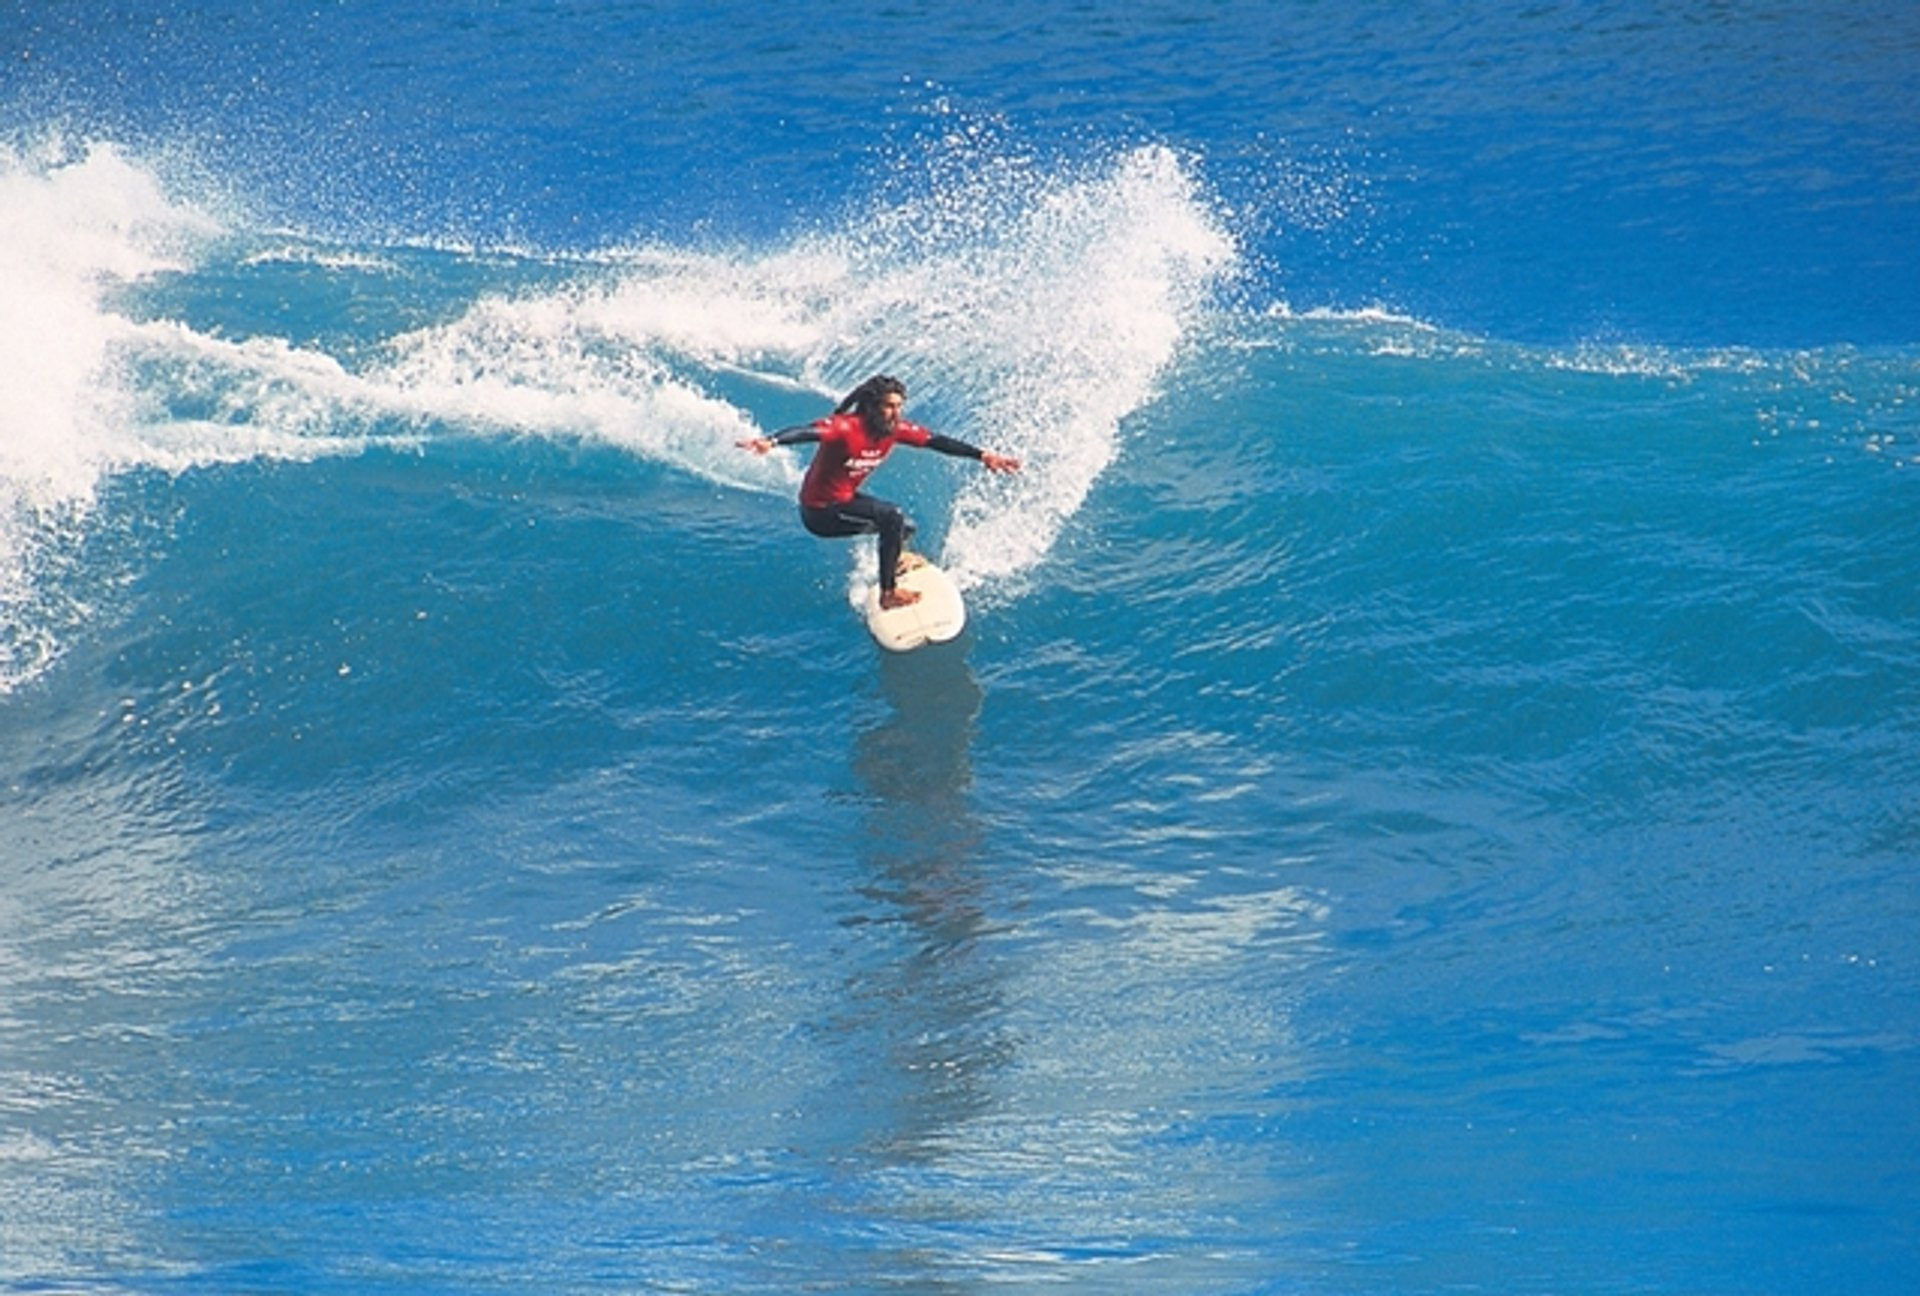 Surfing in Madeira 2020 - Best Time